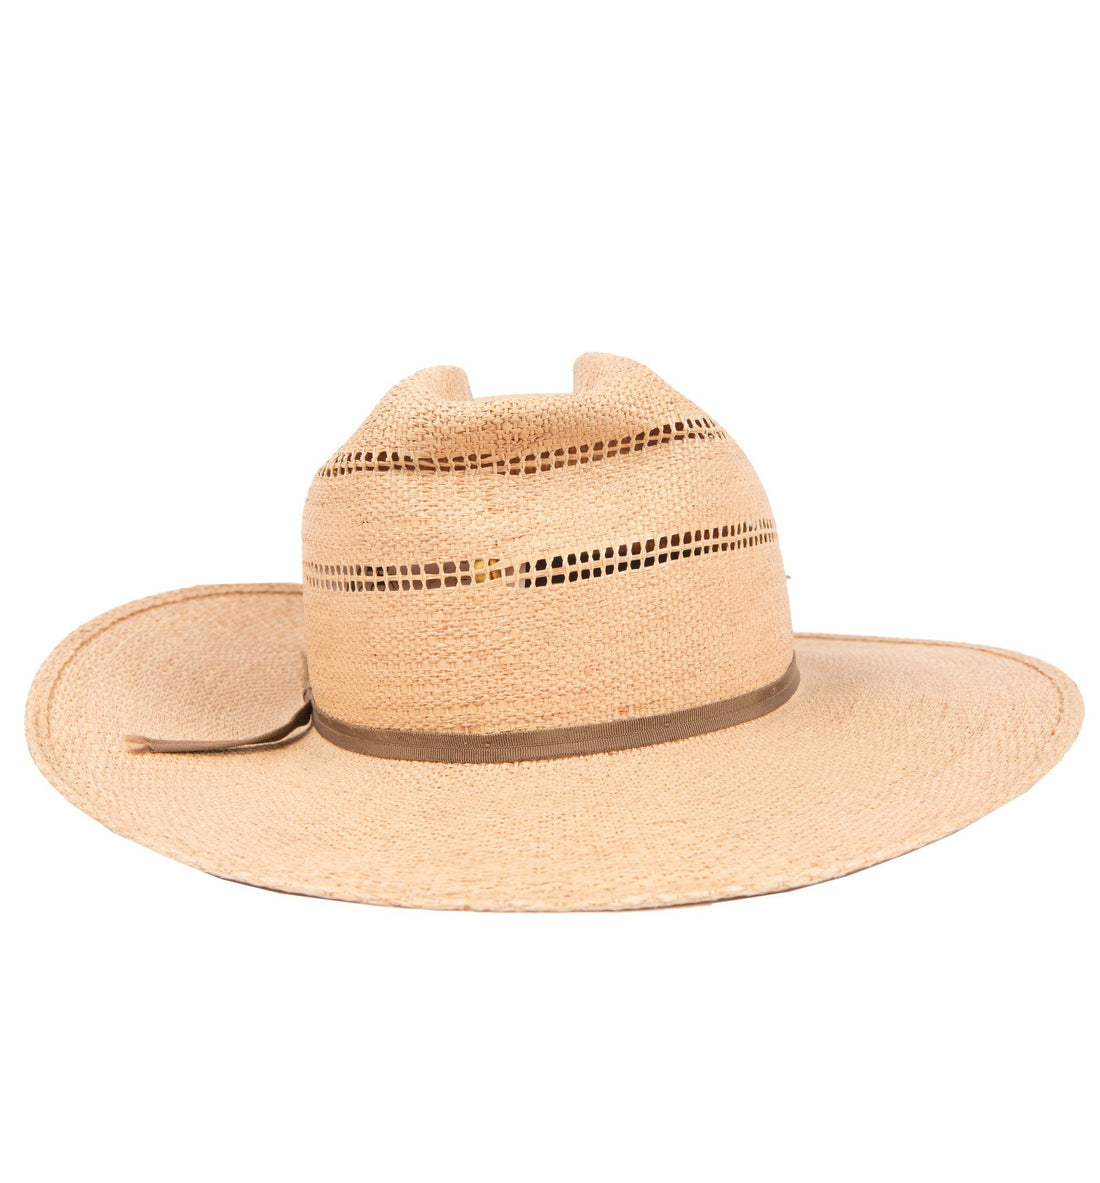 Vintage Straw Hat - Vintage - Iron and Resin